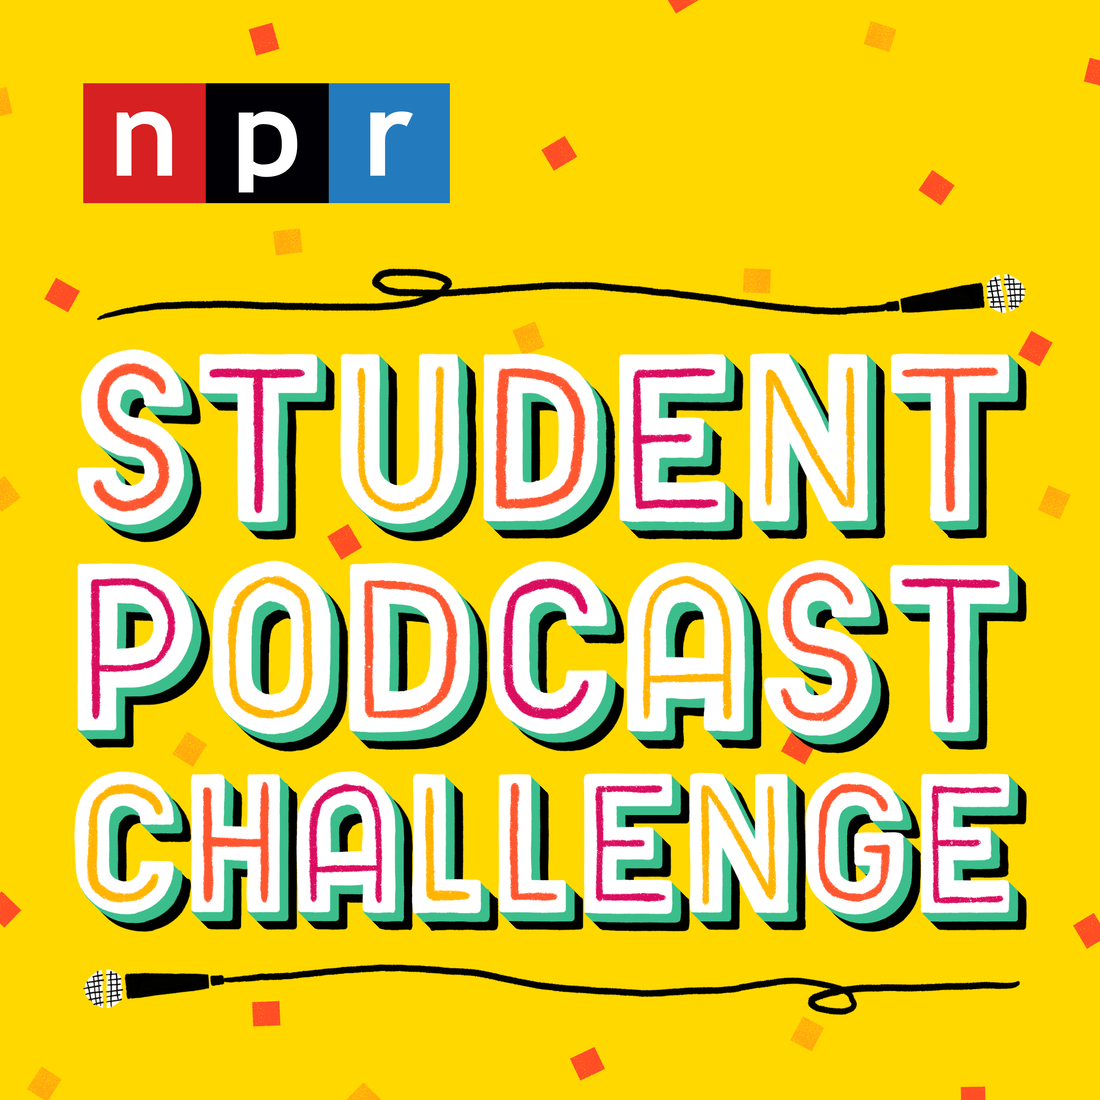 The Student Podcast Challenge podcast will highlight great student podcasts and the teachers and students who made them; and talk with NPR reporters and the judges about what makes an entry sparkle.